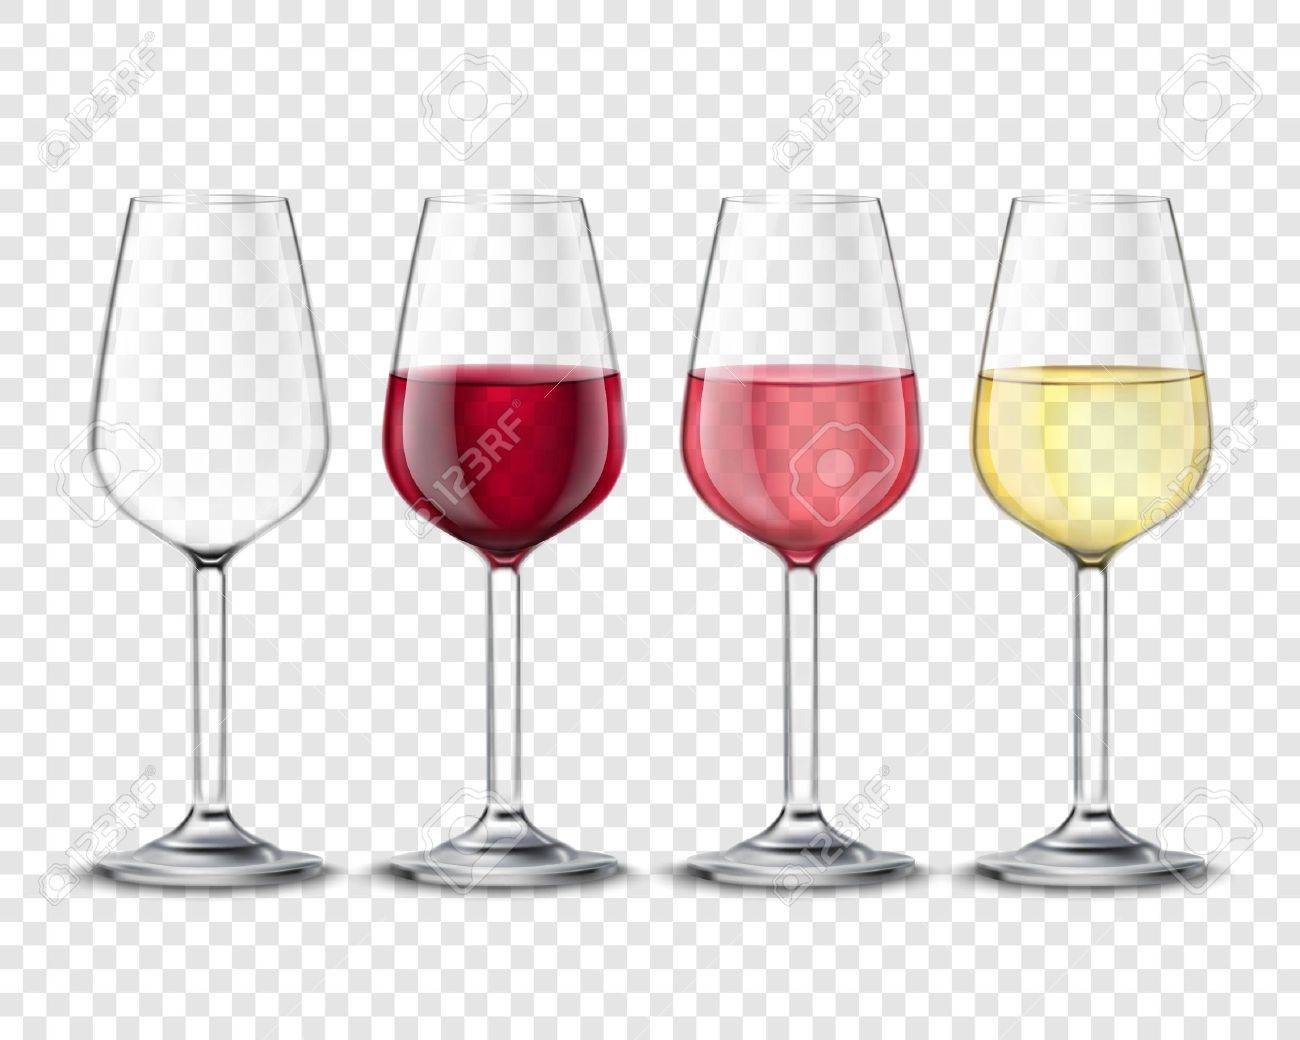 Classic wineglass alcohol drink glasses set with red white and rose wine realistic transparent poster vector illustration - 64668162